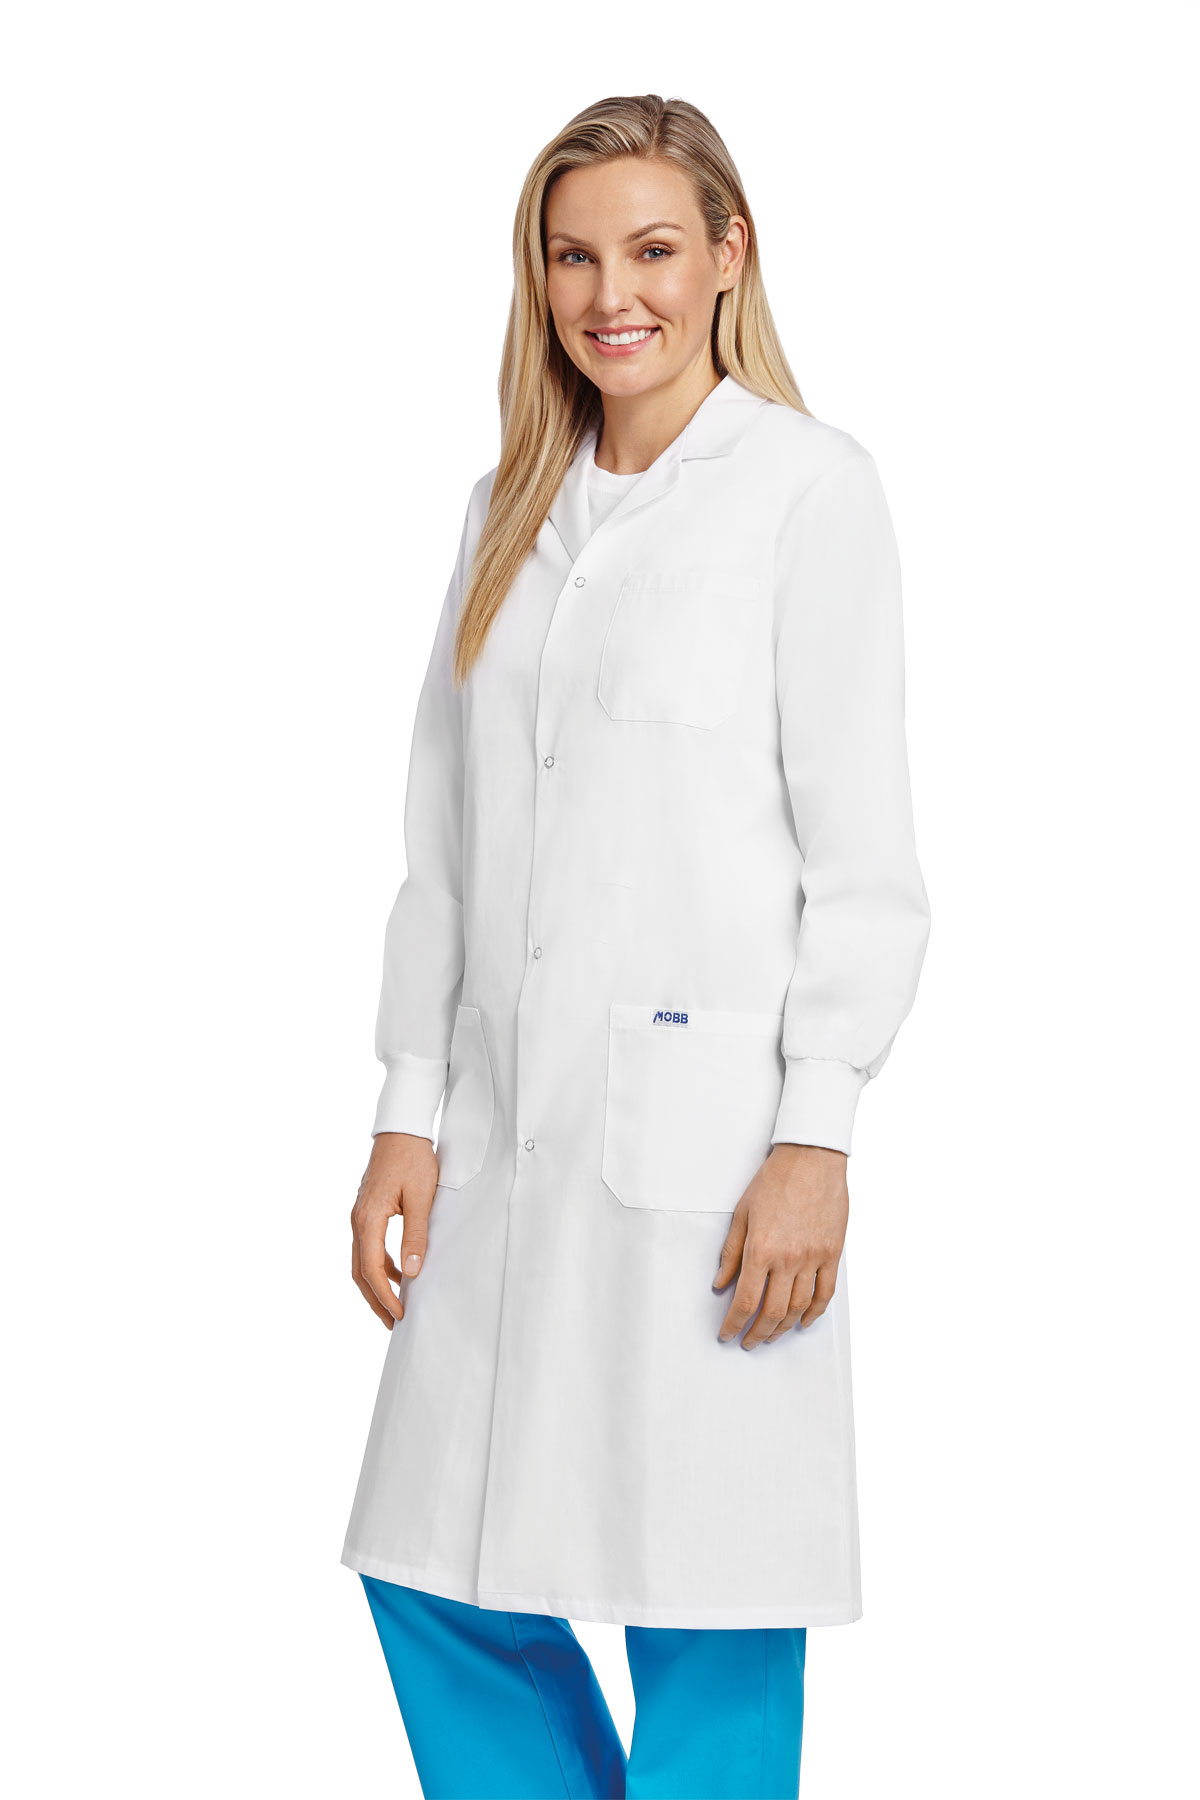 LabCoat-Mob-L507